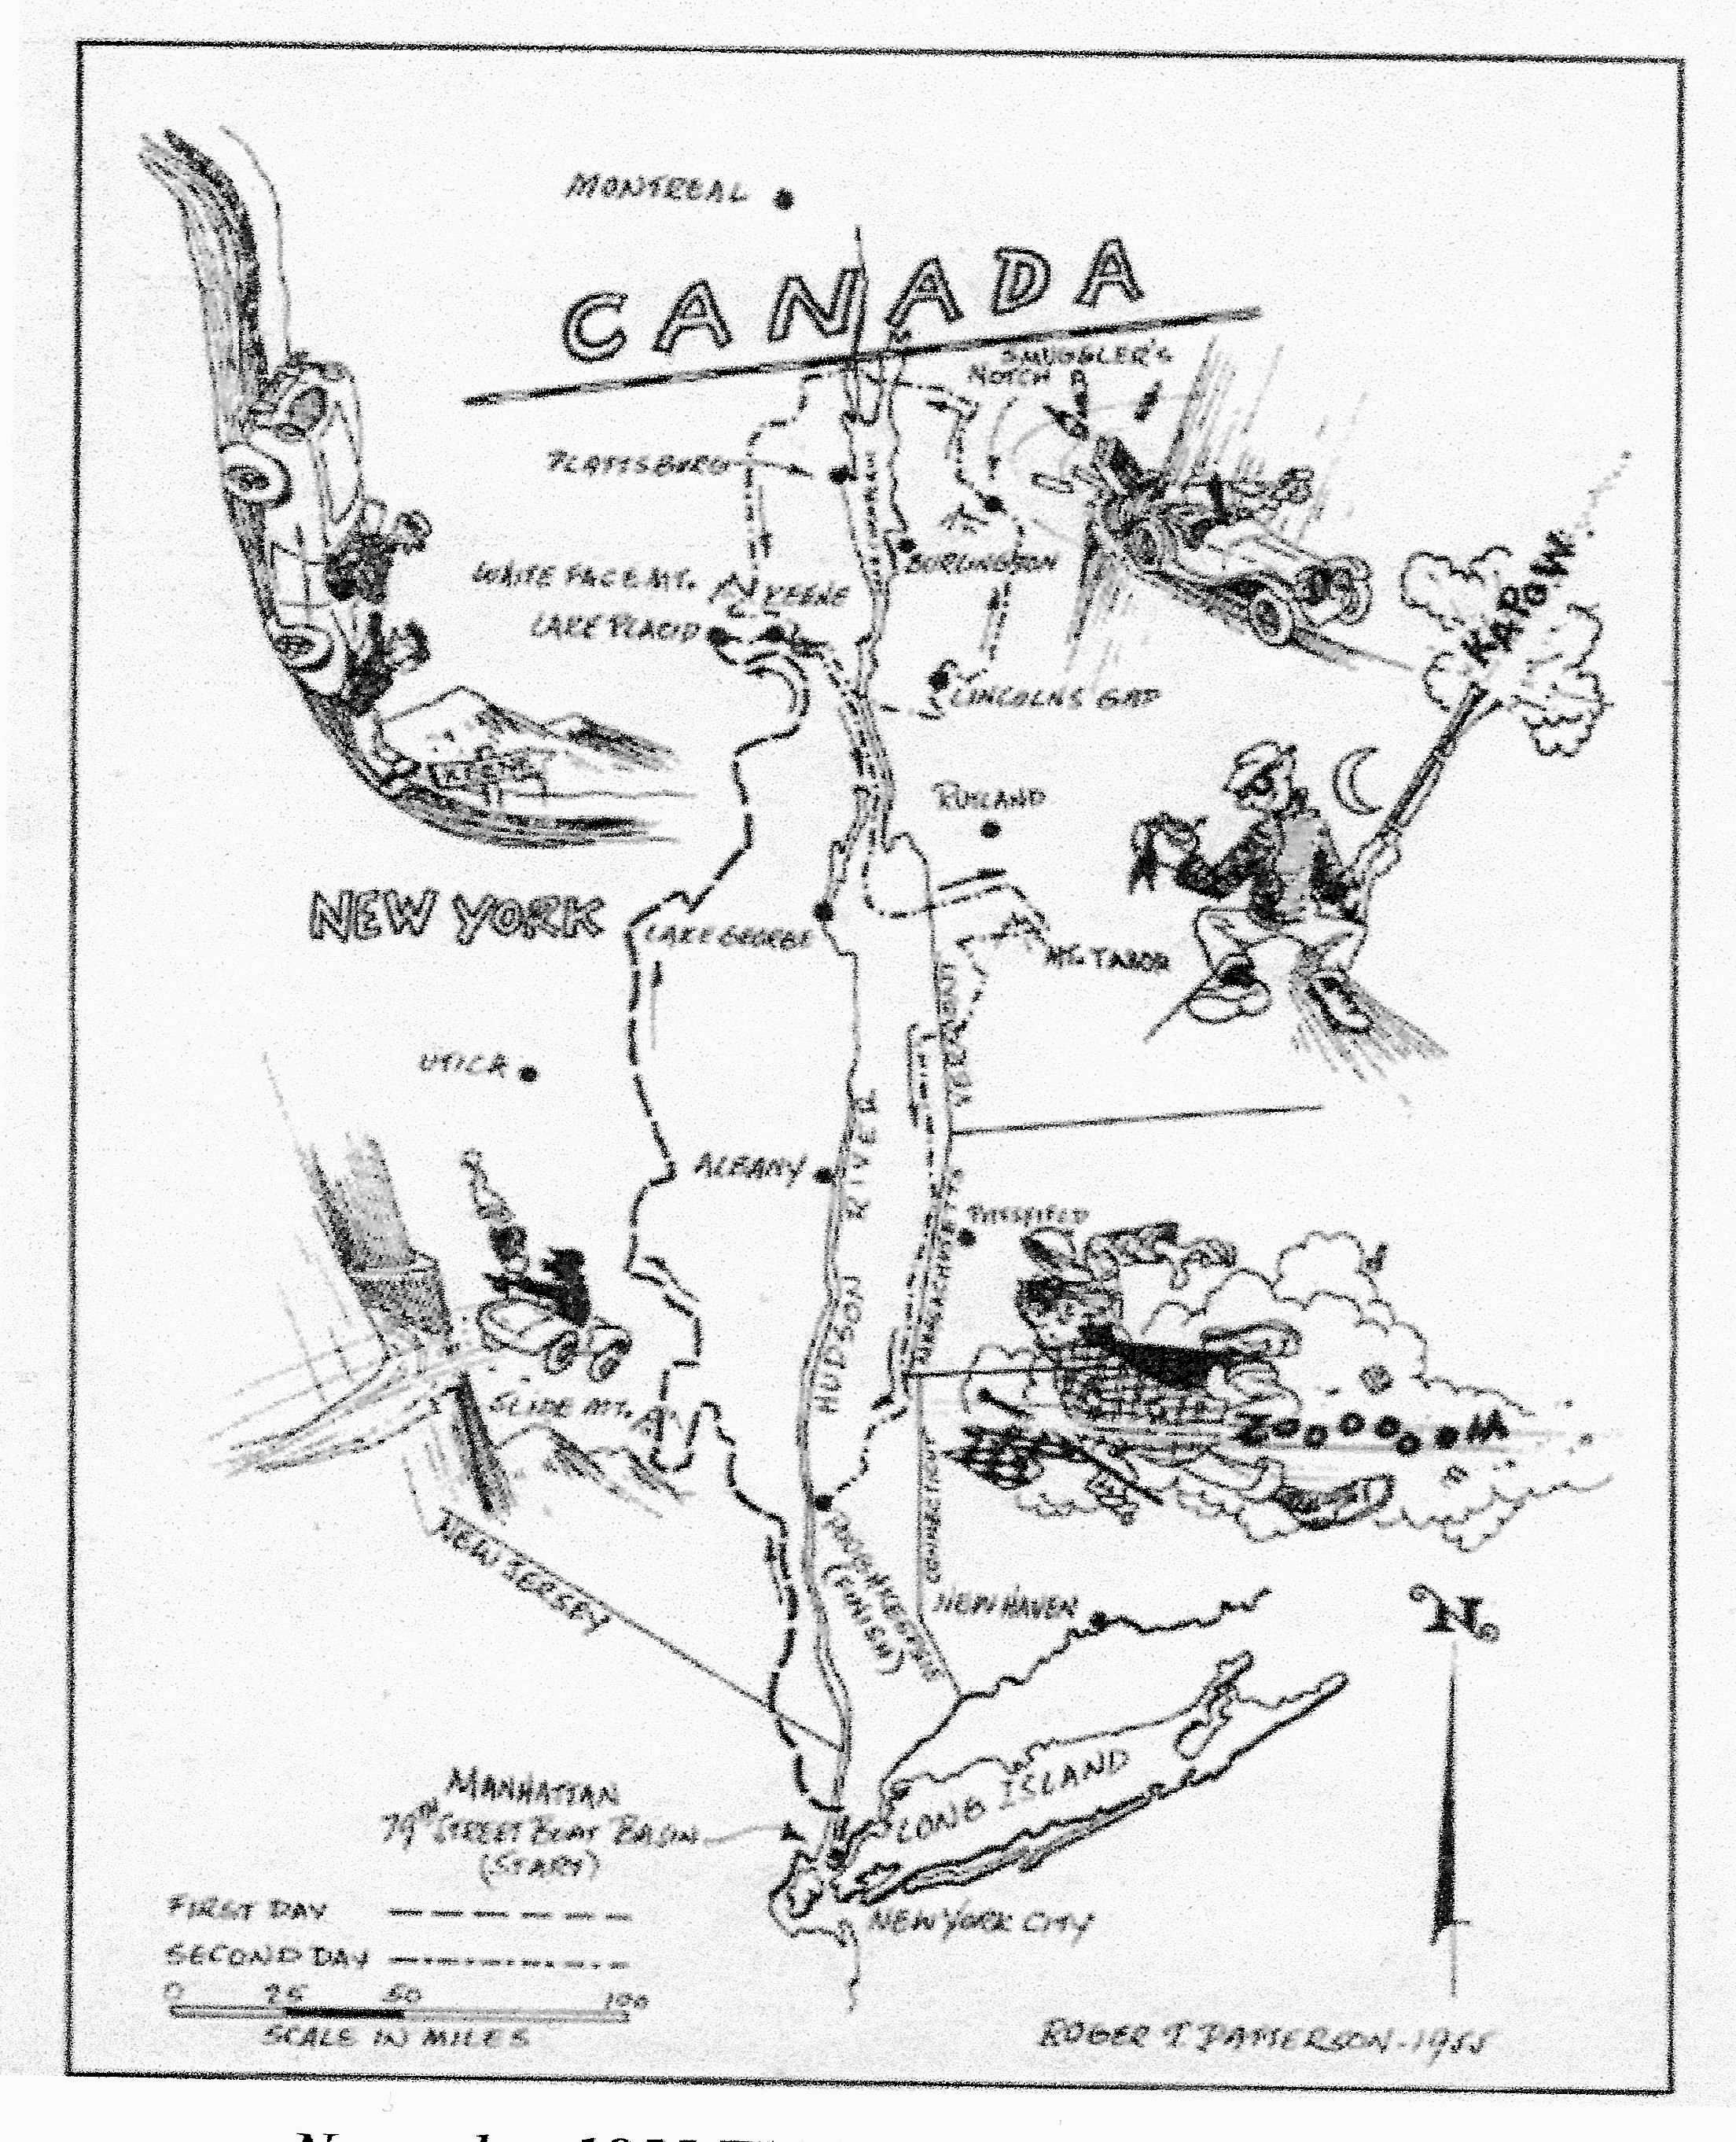 great american mountain rally a major american rally of the 1950s Fiat Coupe 1950 1955 gamr route map